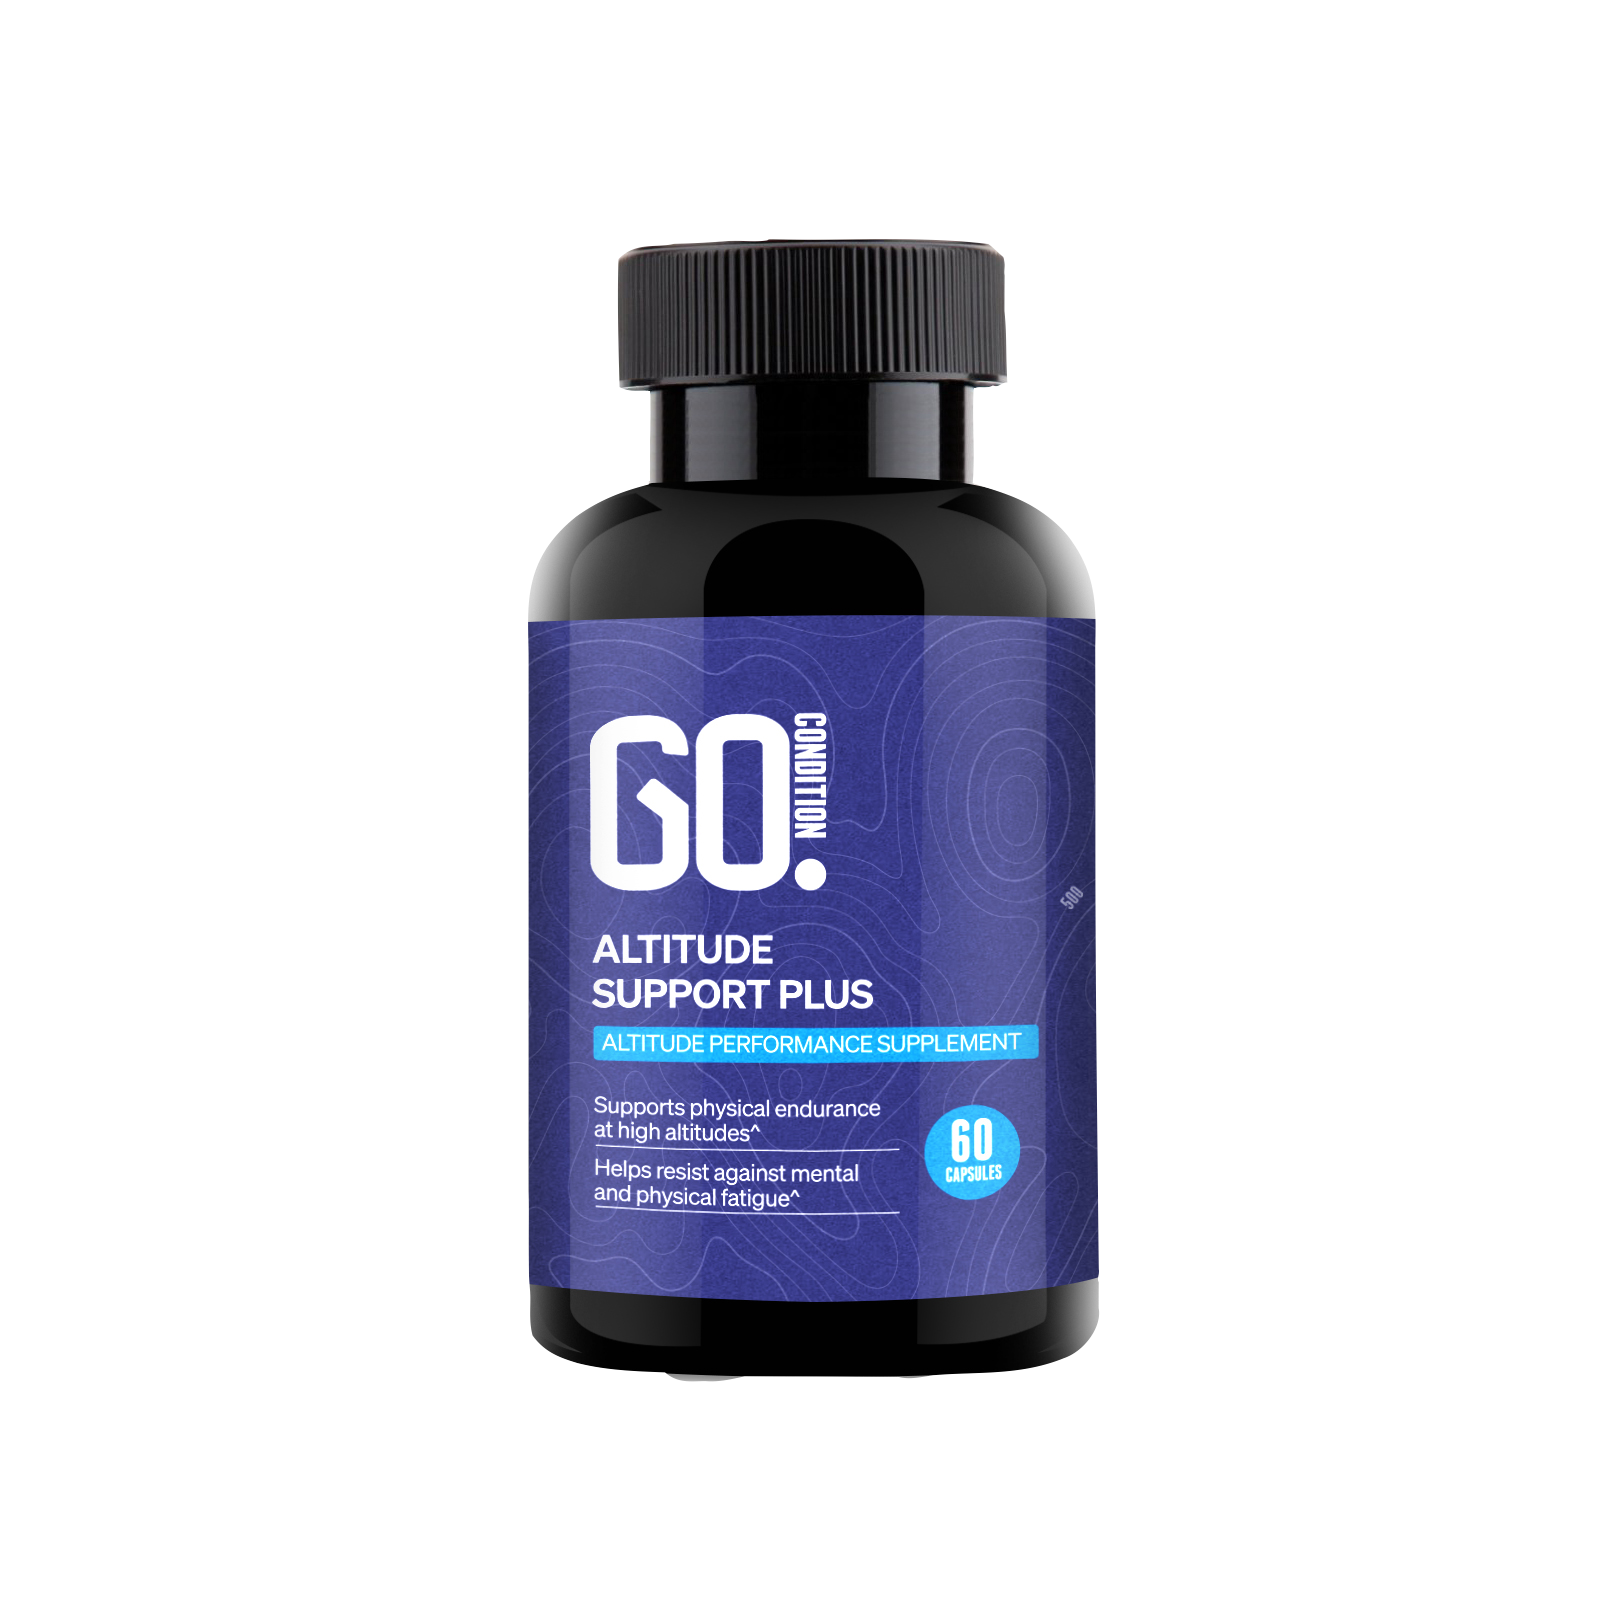 What's in our Altitude Support Supplement